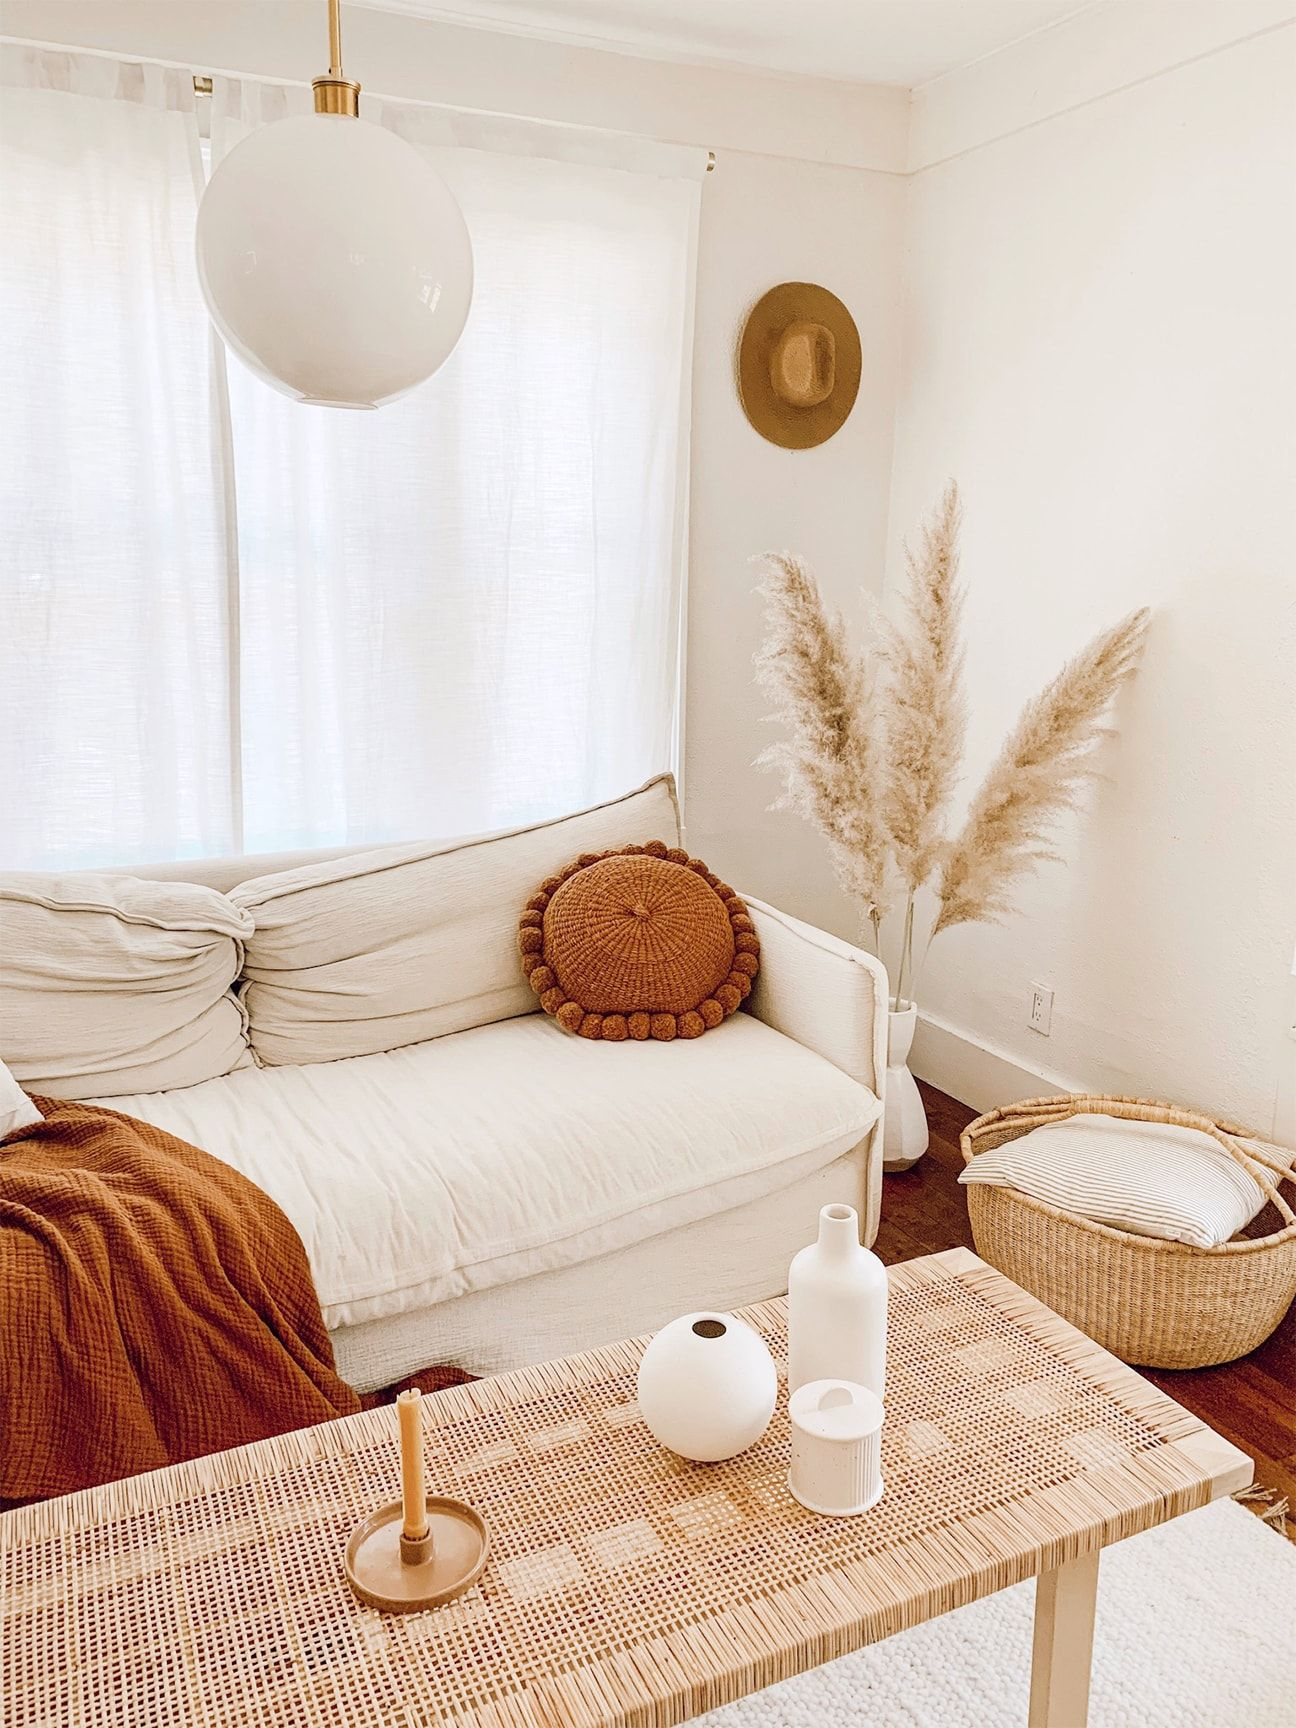 I Used Holistic Design to Make My Home Feel Just Right